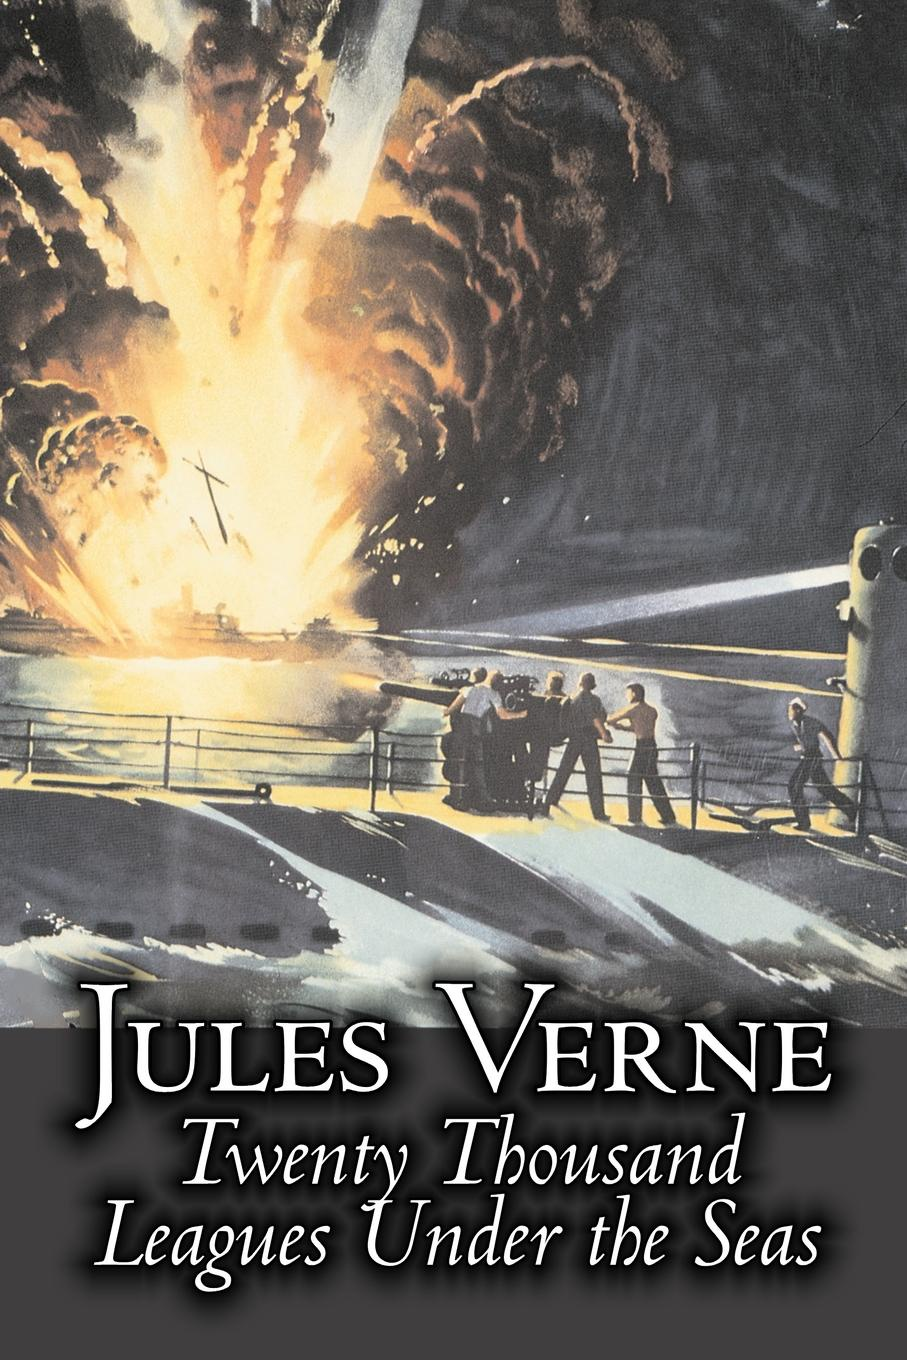 Jules Verne, F. P. Walter Twenty Thousand Leagues Under the Seas by Jules Verne, Fiction, Fantasy & Magic